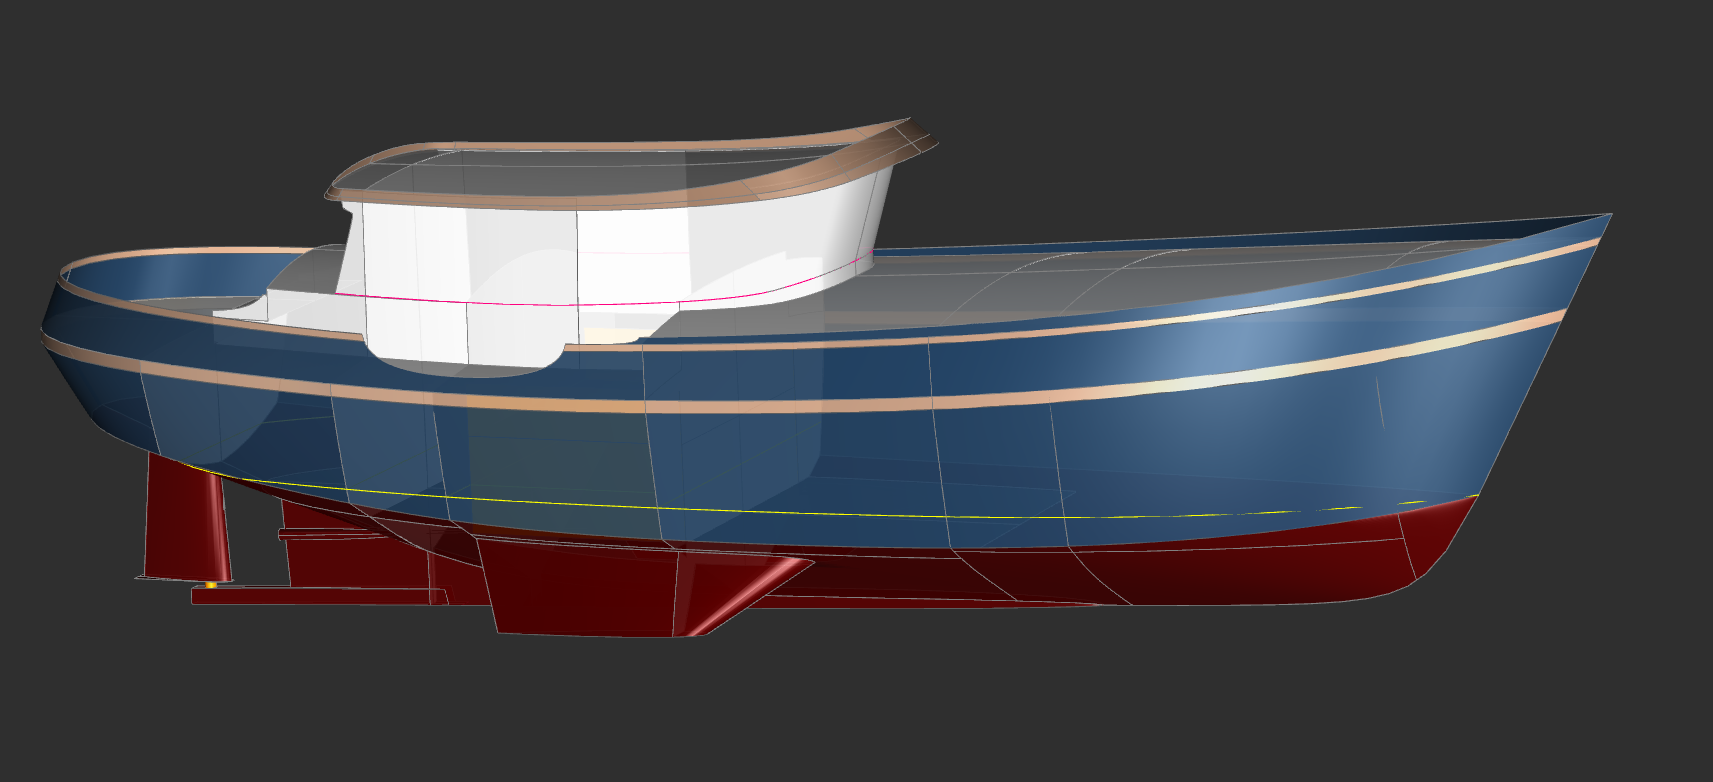 50' Trawler Yacht FAR HORIZON - Kasten Marine Design, Inc.